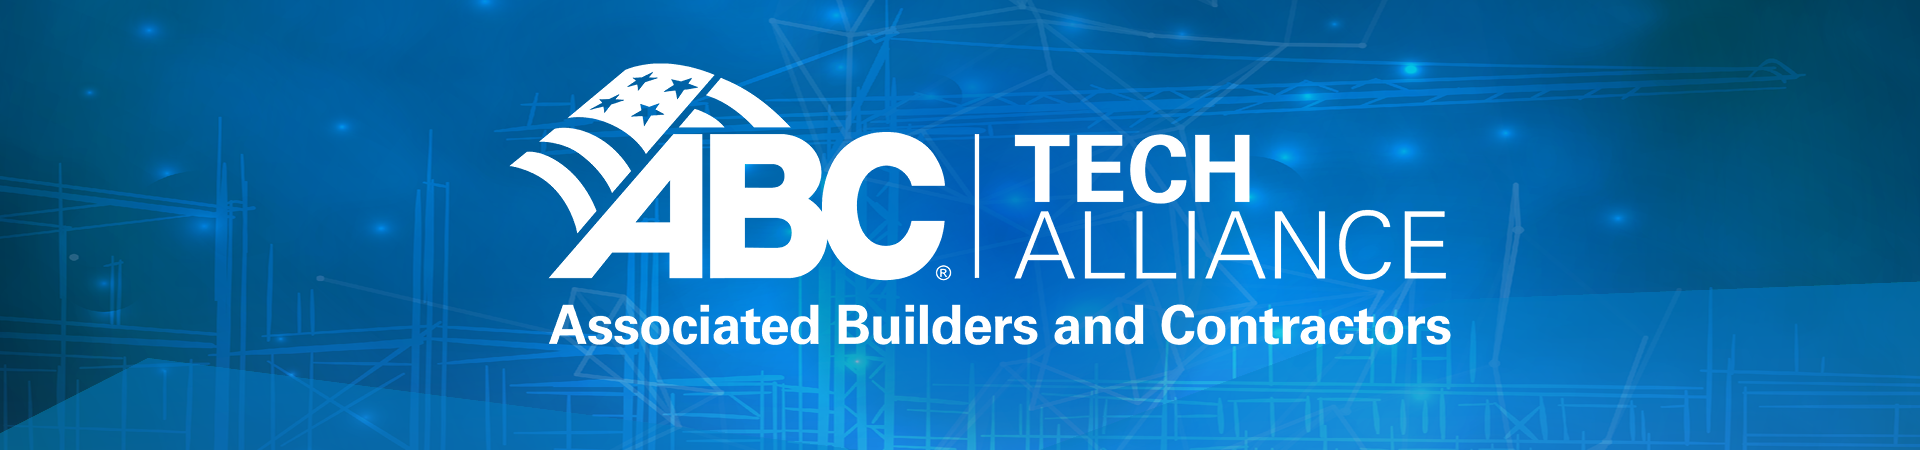 Riskcast Solutions today announced it is an inaugural member of the Associated Builders and Contractors Tech Alliance—a consortium of firms that create construction technology and innovative digital solutions that can bring value to ABC contractor members, the majority of which are classified as small and mid-sized businesses and primarily perform work in the industrial and commercial sectors.